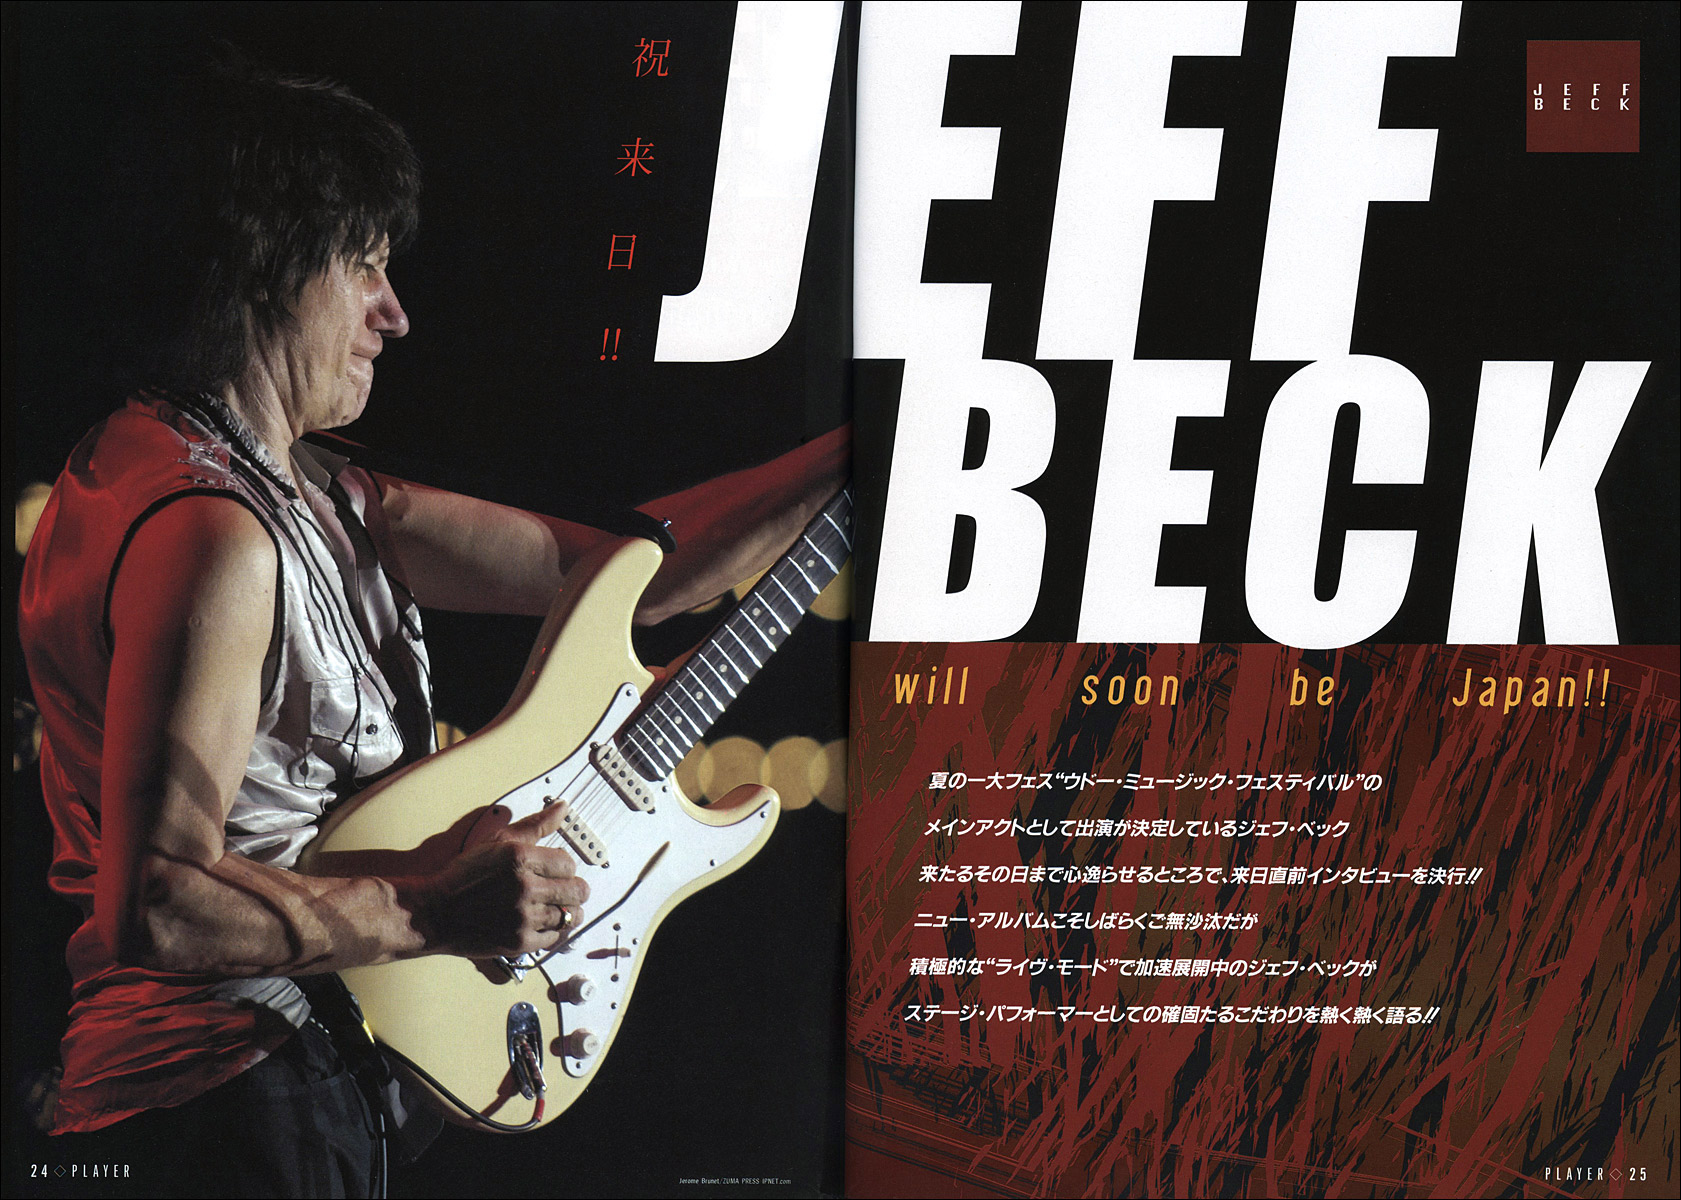 Jeff_Beck_Player_magazine_2006